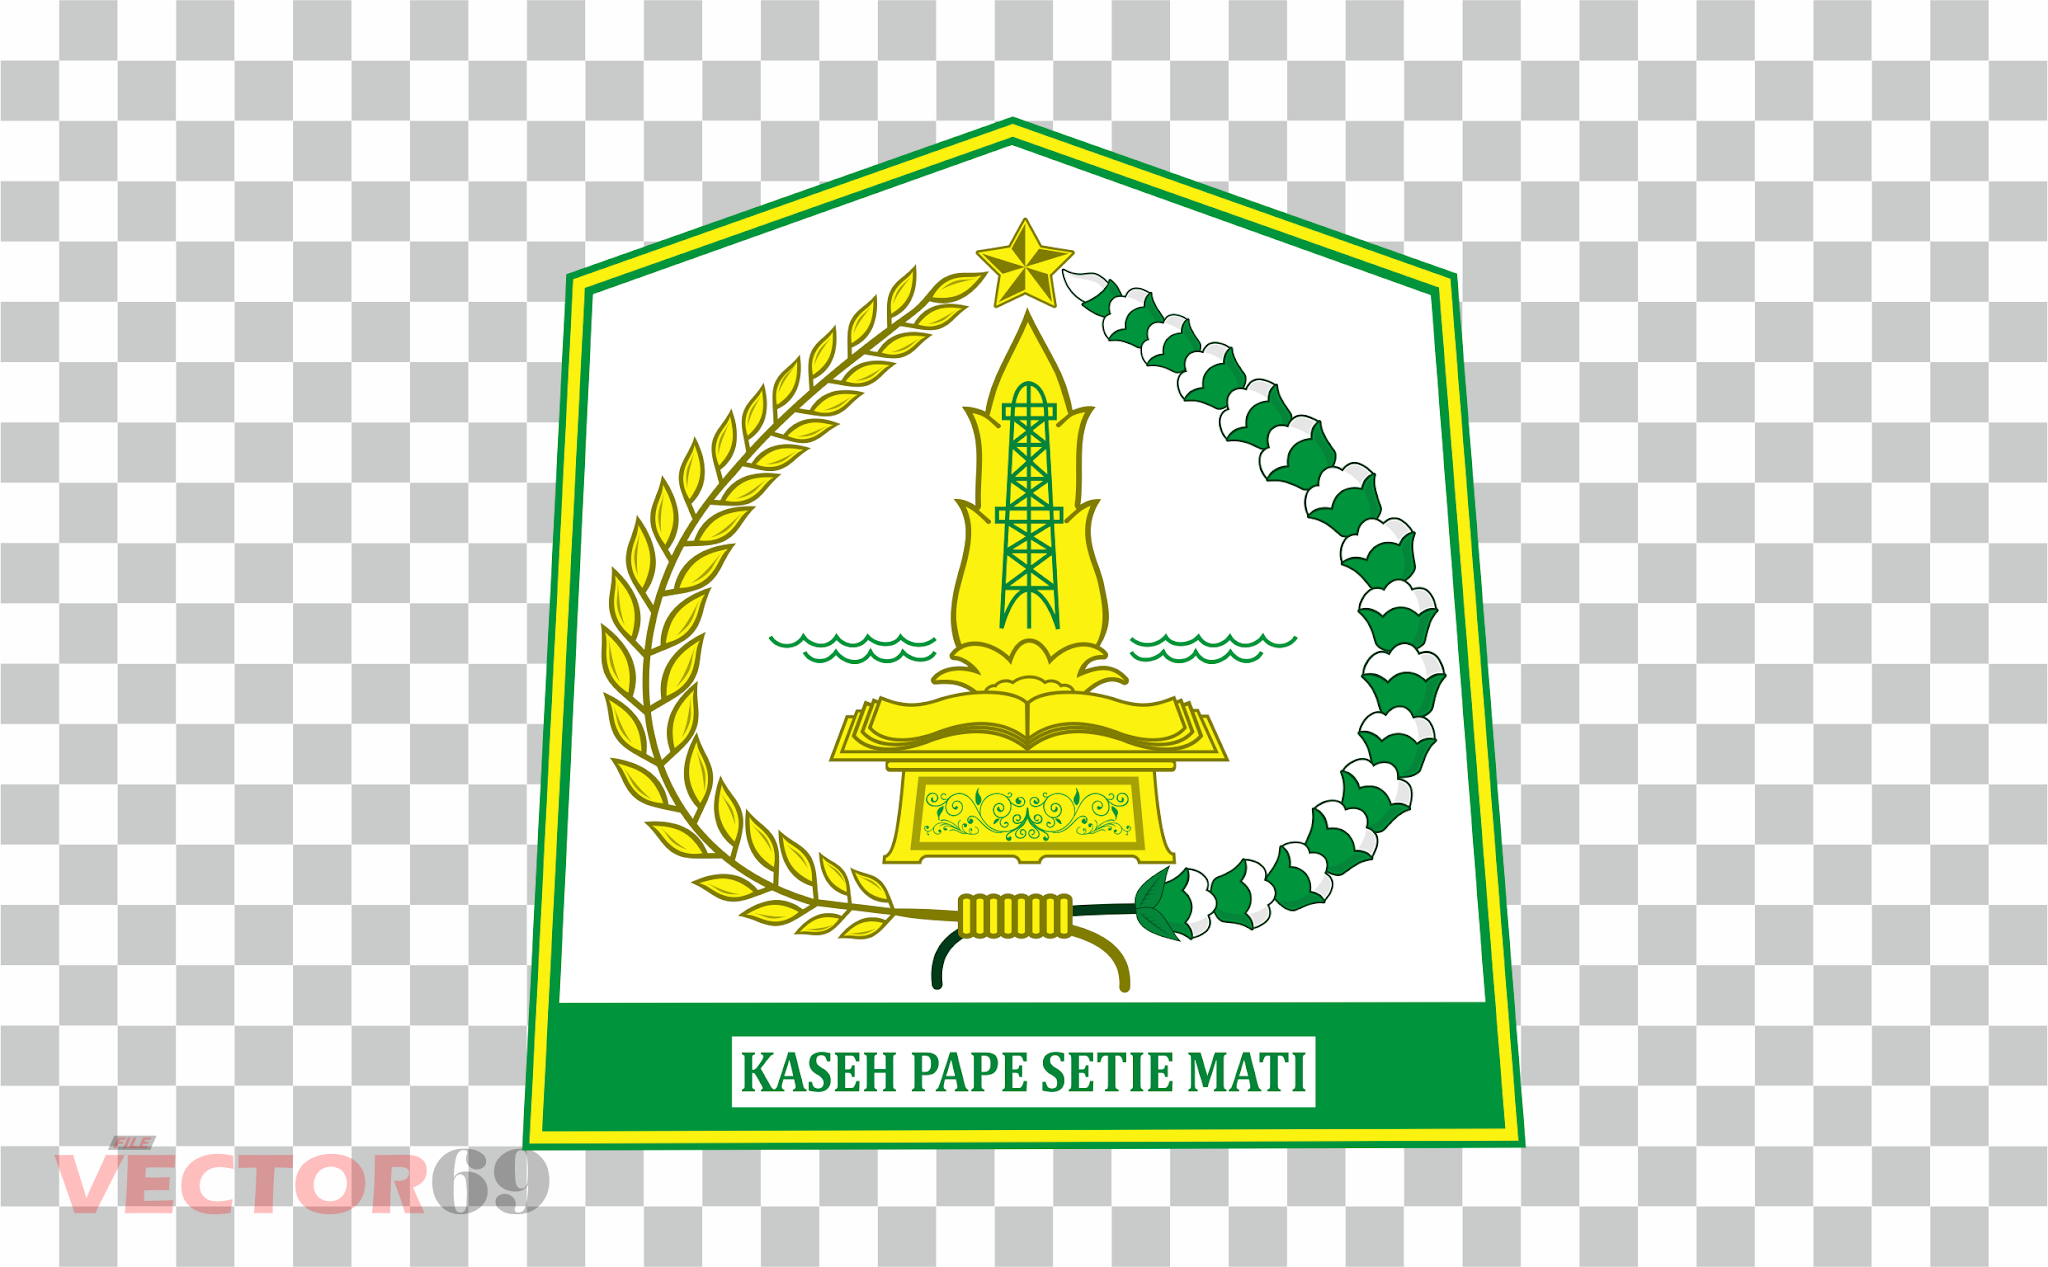 Kabupaten Aceh Tamiang Logo - Download Vector File PNG (Portable Network Graphics)